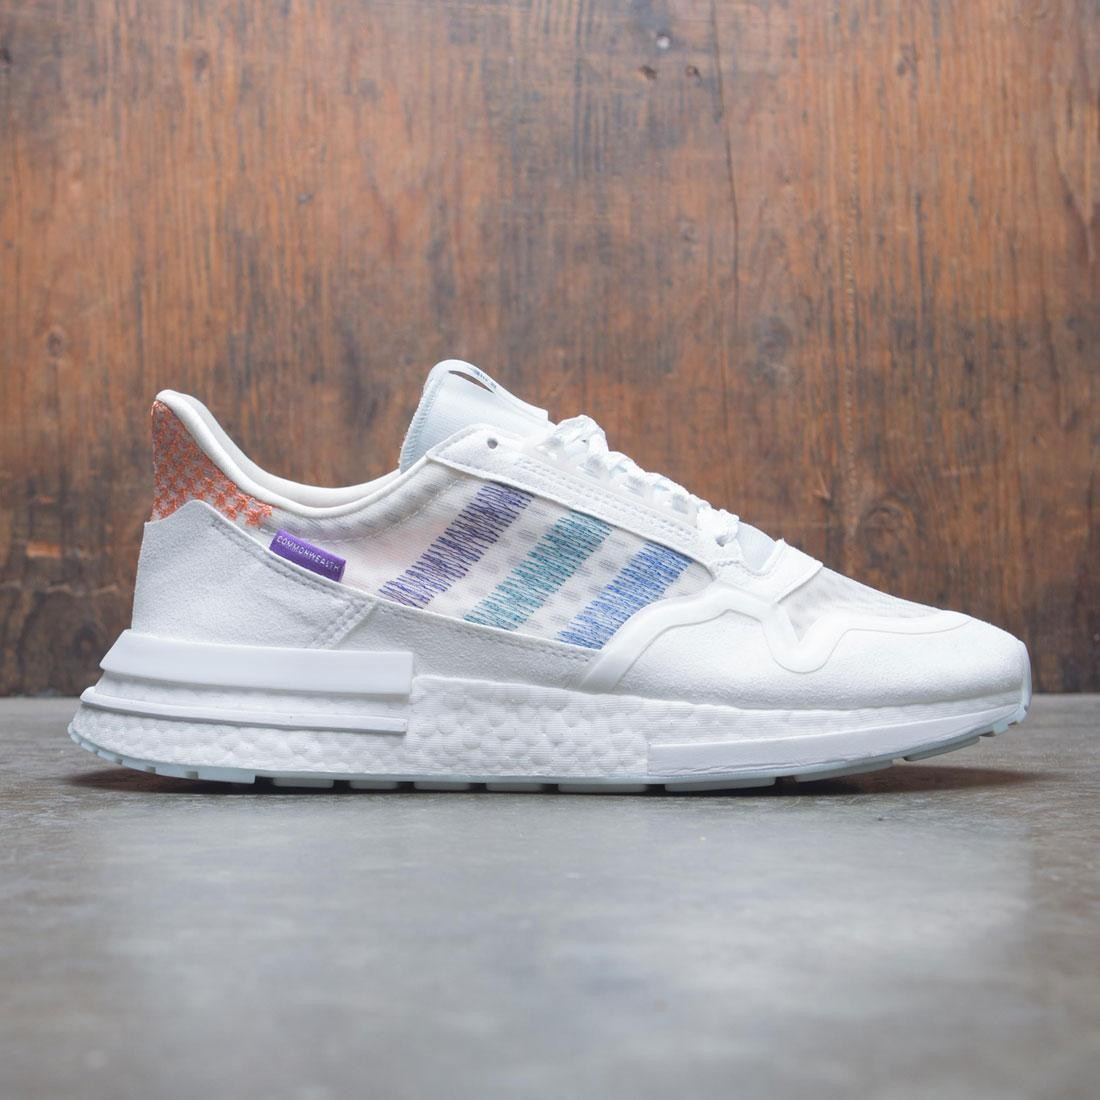 39e6d7f50f468 Adidas Consortium x Commonwealth Men ZX 500 RM (white   orchid tint)